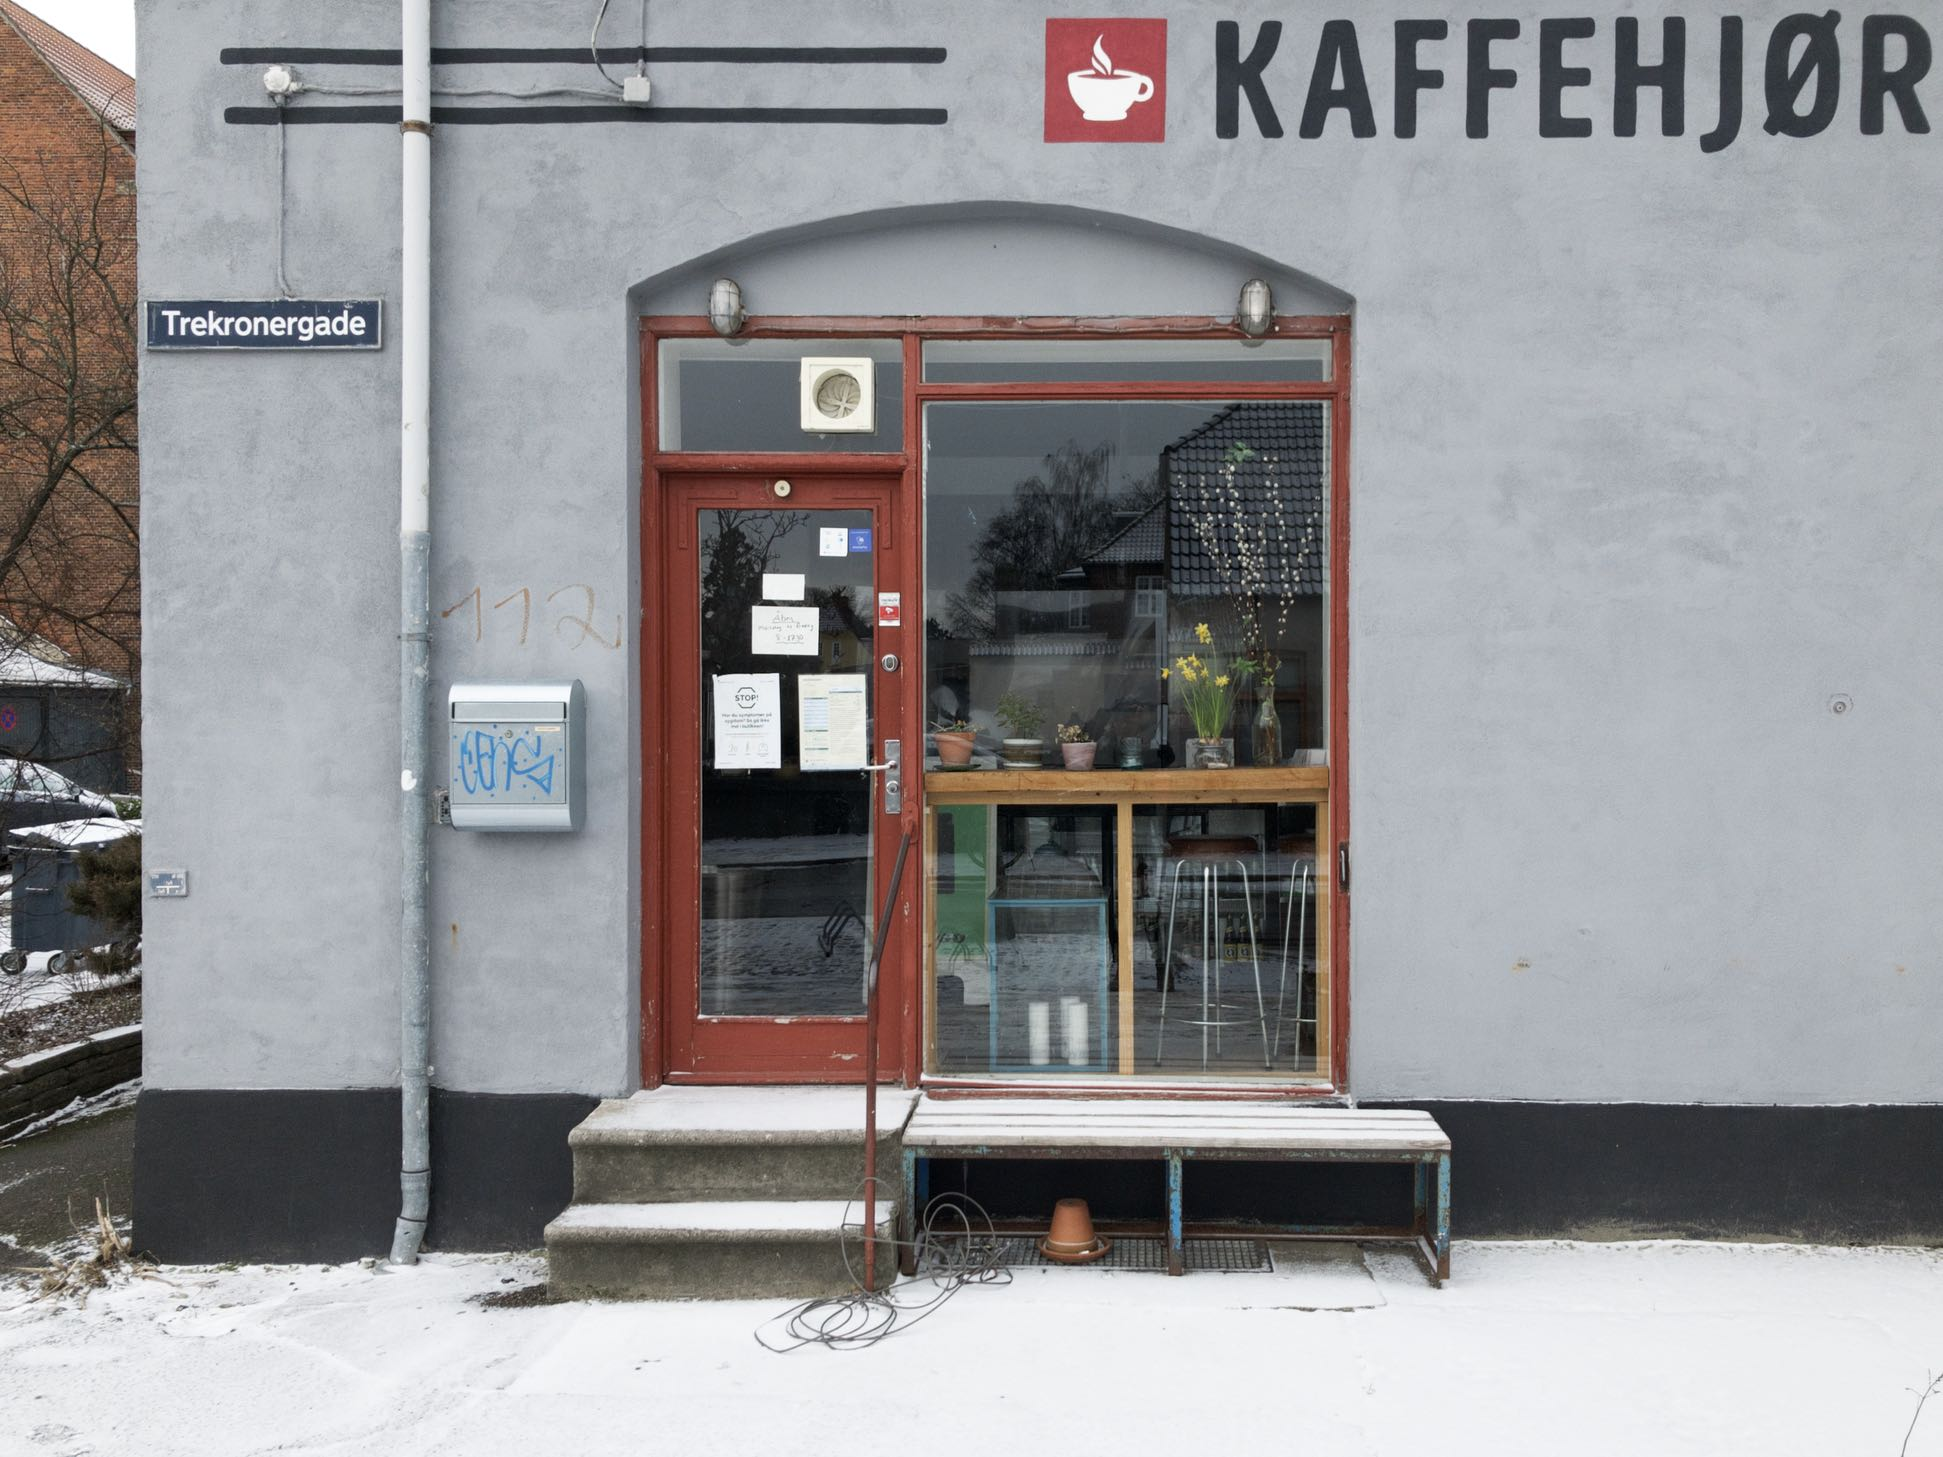 Coffee corner in the snow. Corona notices in the window. Closed for business. The bench outside on a leash. Graffiti on the letterbox.